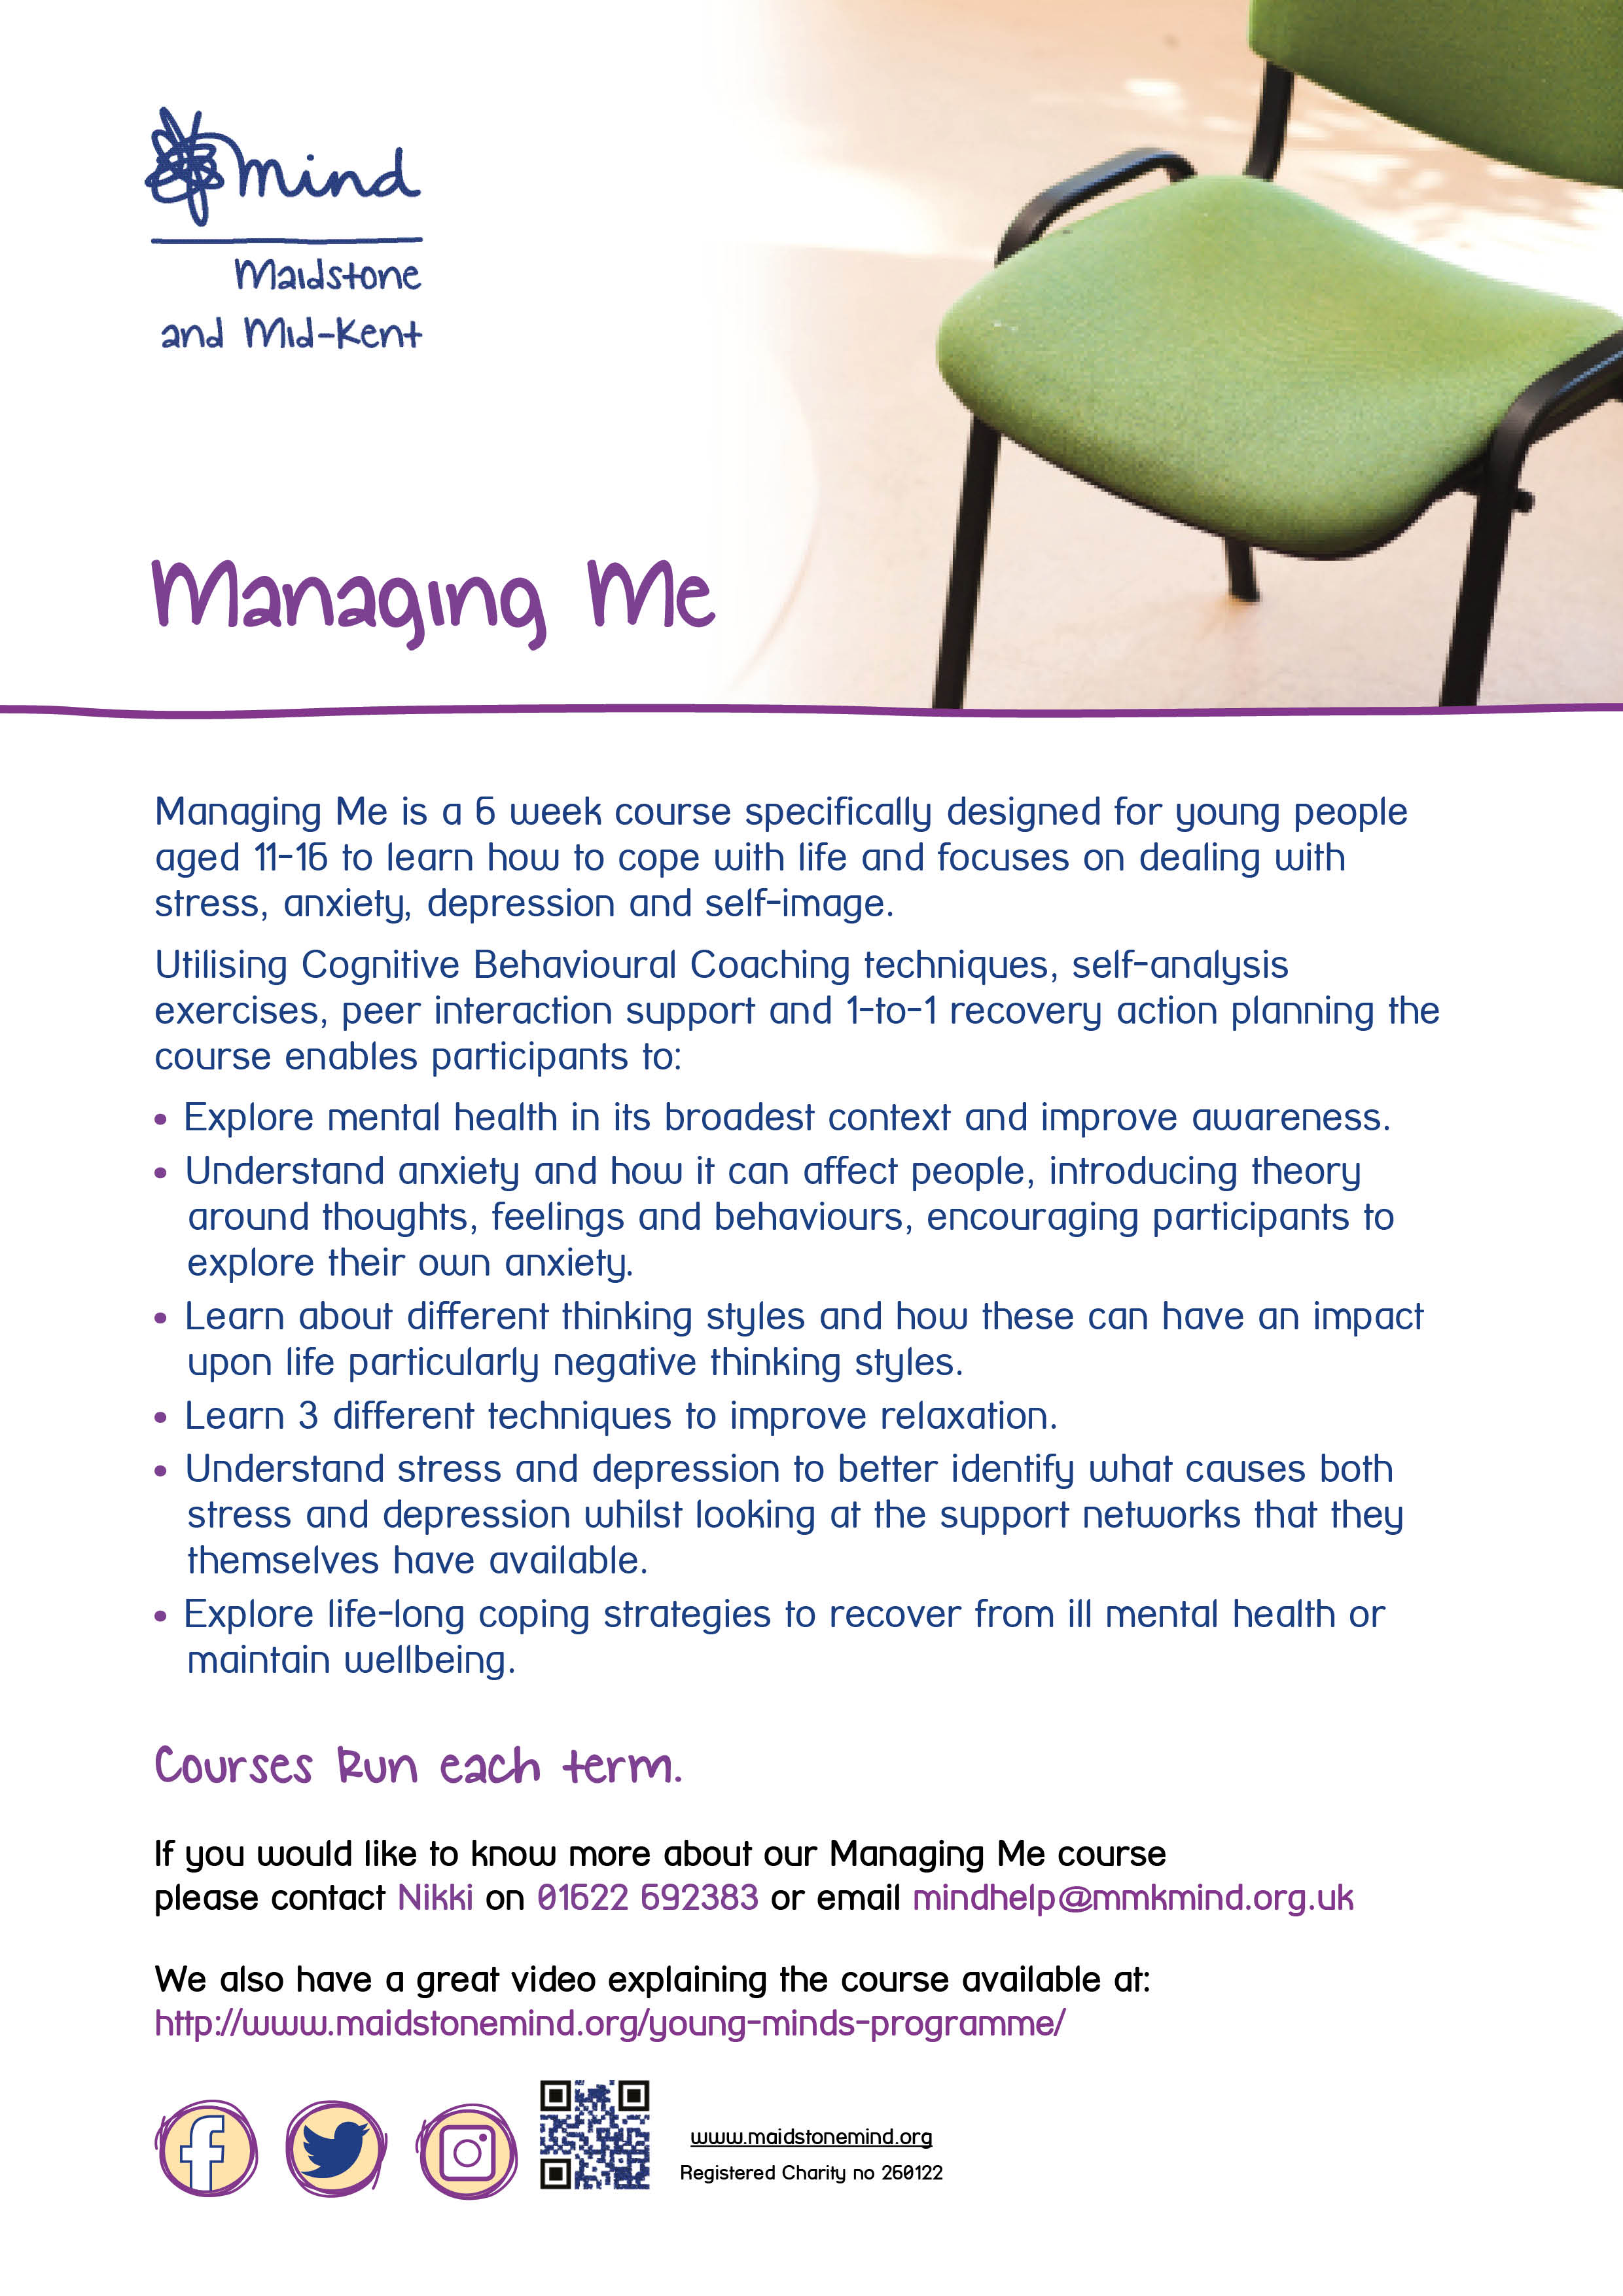 Managing Me - September 2018 : Managing Me is a 6 week course specifically designed for young people aged 11-16 to learn how to cope with life and focuses on dealing with stress, anxiety, depression and self-image. Utilising Cognitive Behavioural Coaching techniques, self-analysis exercises, peer interaction support and 1-to-1 recovery action planning the course enables participants to: Explore mental health in its broadest context and improve awareness. Understand anxiety and how it can affect people, introducing theory around thoughts, feelings and behaviours, encouraging participants to explore their own anxiety. Learn about different thinking styles and how these can have an impact upon life particularly negative thinking styles. Learn 3 different techniques to improve relaxation. Understand stress and depression to better identify what causes both stress and depression whilst looking at the support networks that they themselves have available. Explore life-long coping strategies to recover from ill mental health or maintain wellbeing. Courses Run each term. If you would like to know more about our Managing Me course please contact Nikki on 01622 692383 or email mindhelp@mmkmind.org.uk We also have a great video explaining the course available at: http://www.maidstonemind.org/young-minds-programme/